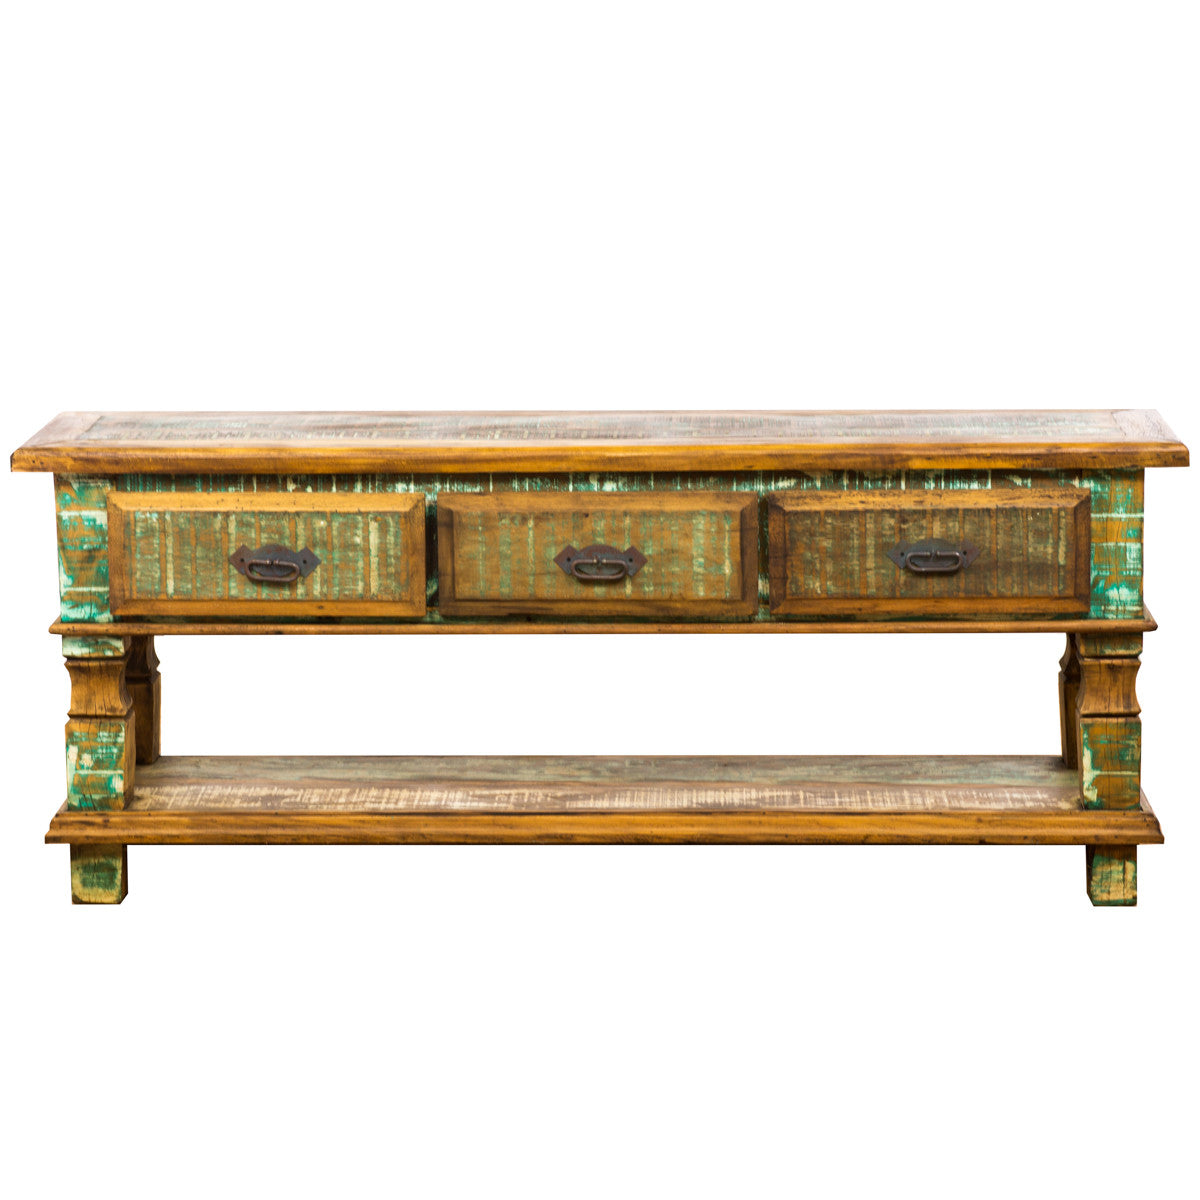 peroba wood furniture. Console, Console Table, Credenza, Sideboard, Reclaimed Wood Furniture, · \ Peroba Furniture T